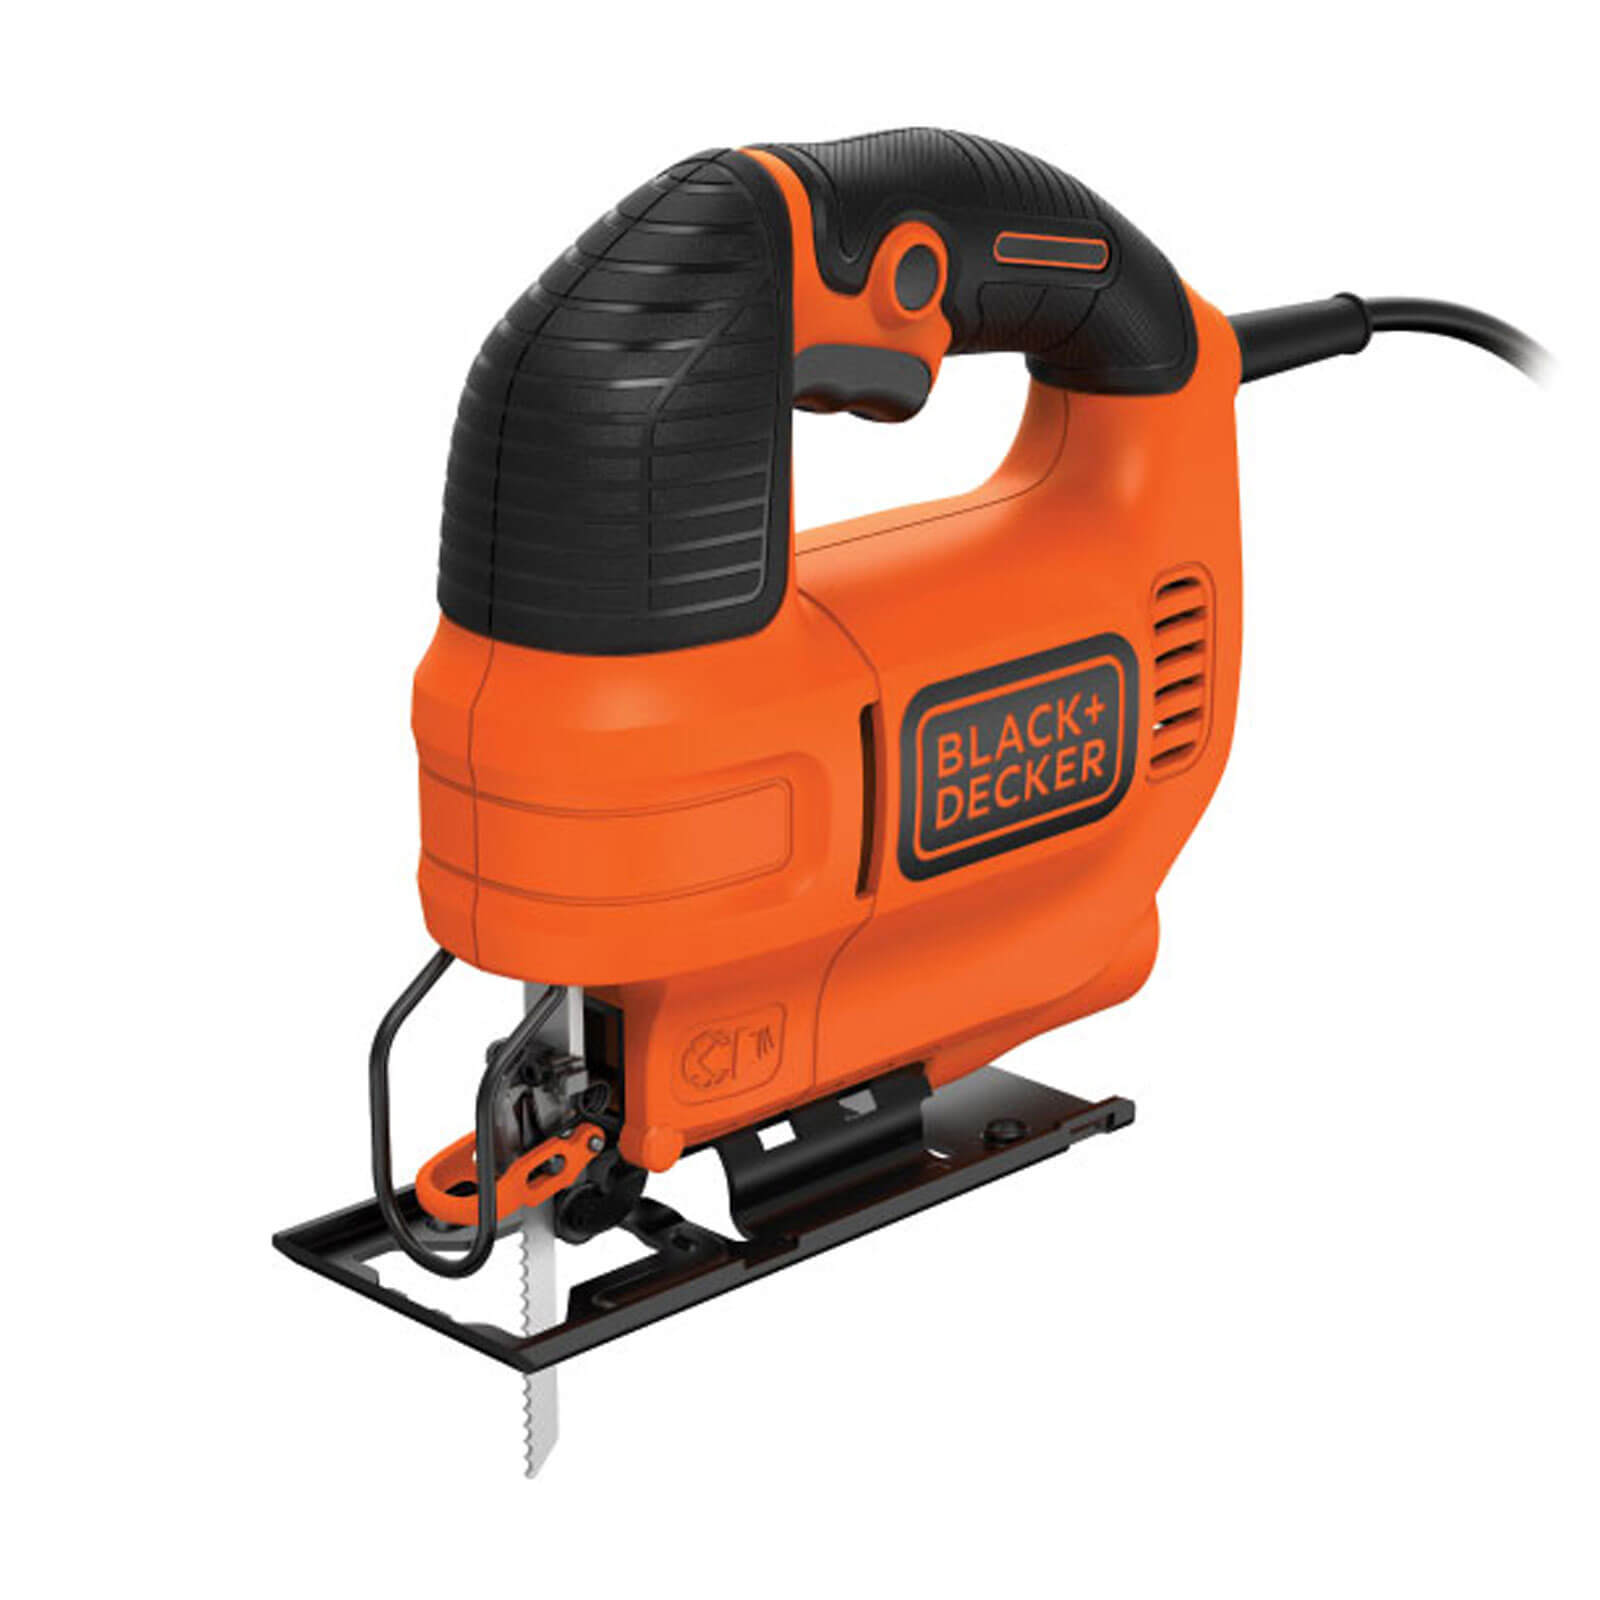 Image of Black and Decker KS701EK Jigsaw 240v